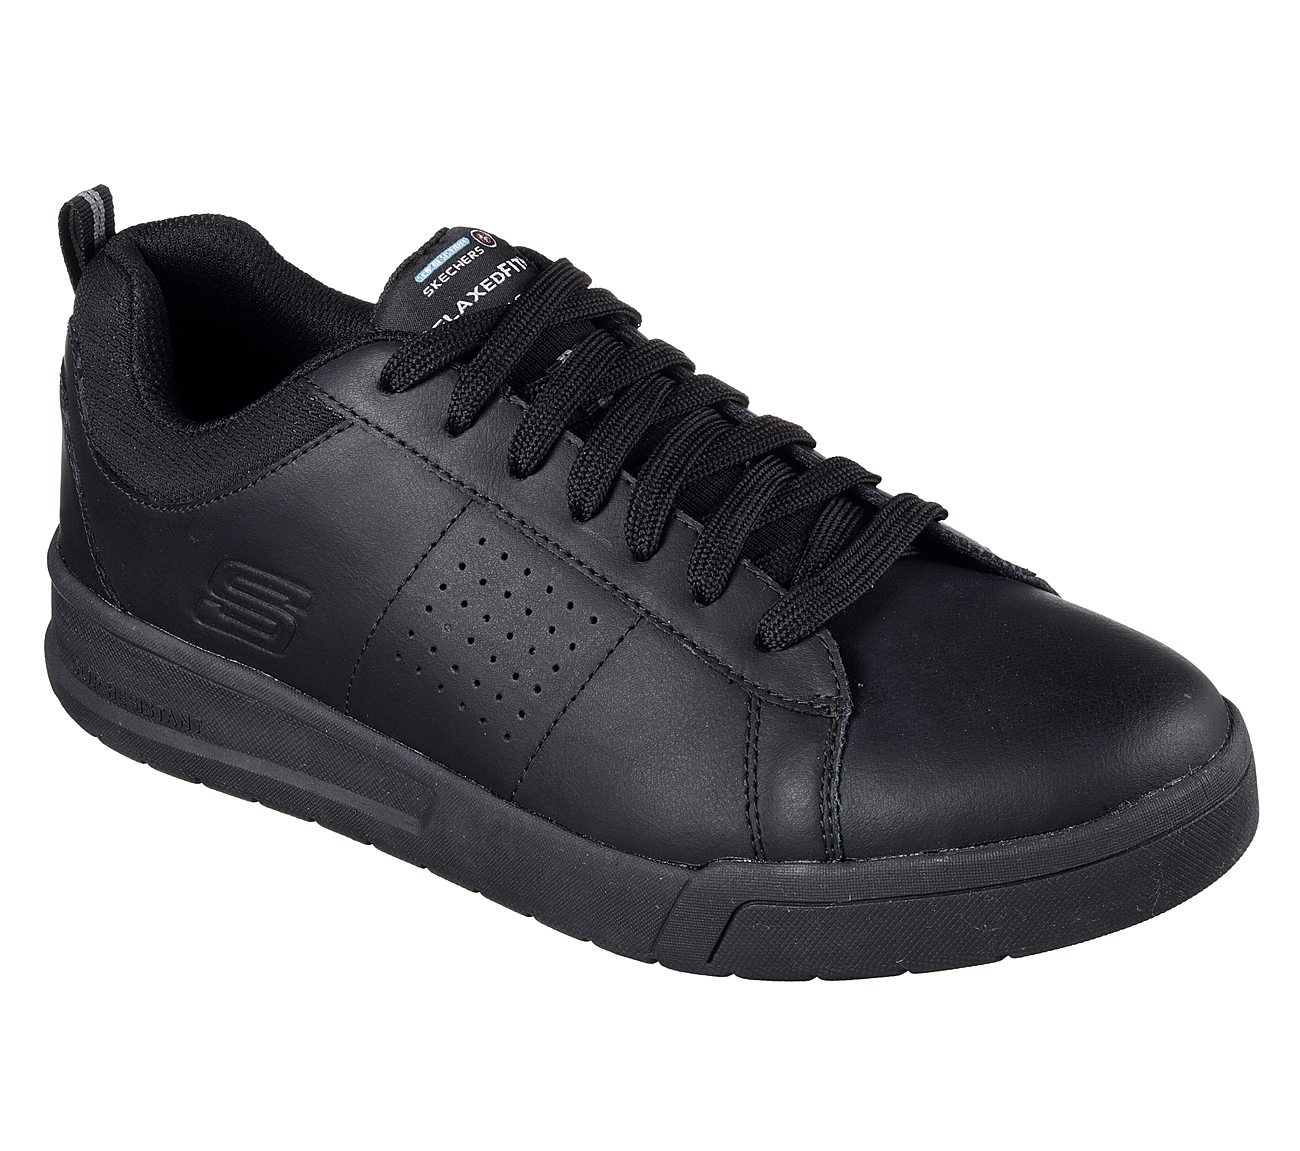 Buy SKECHERS Work Relaxed Fit: Glenner SR Work Shoes only $70.00